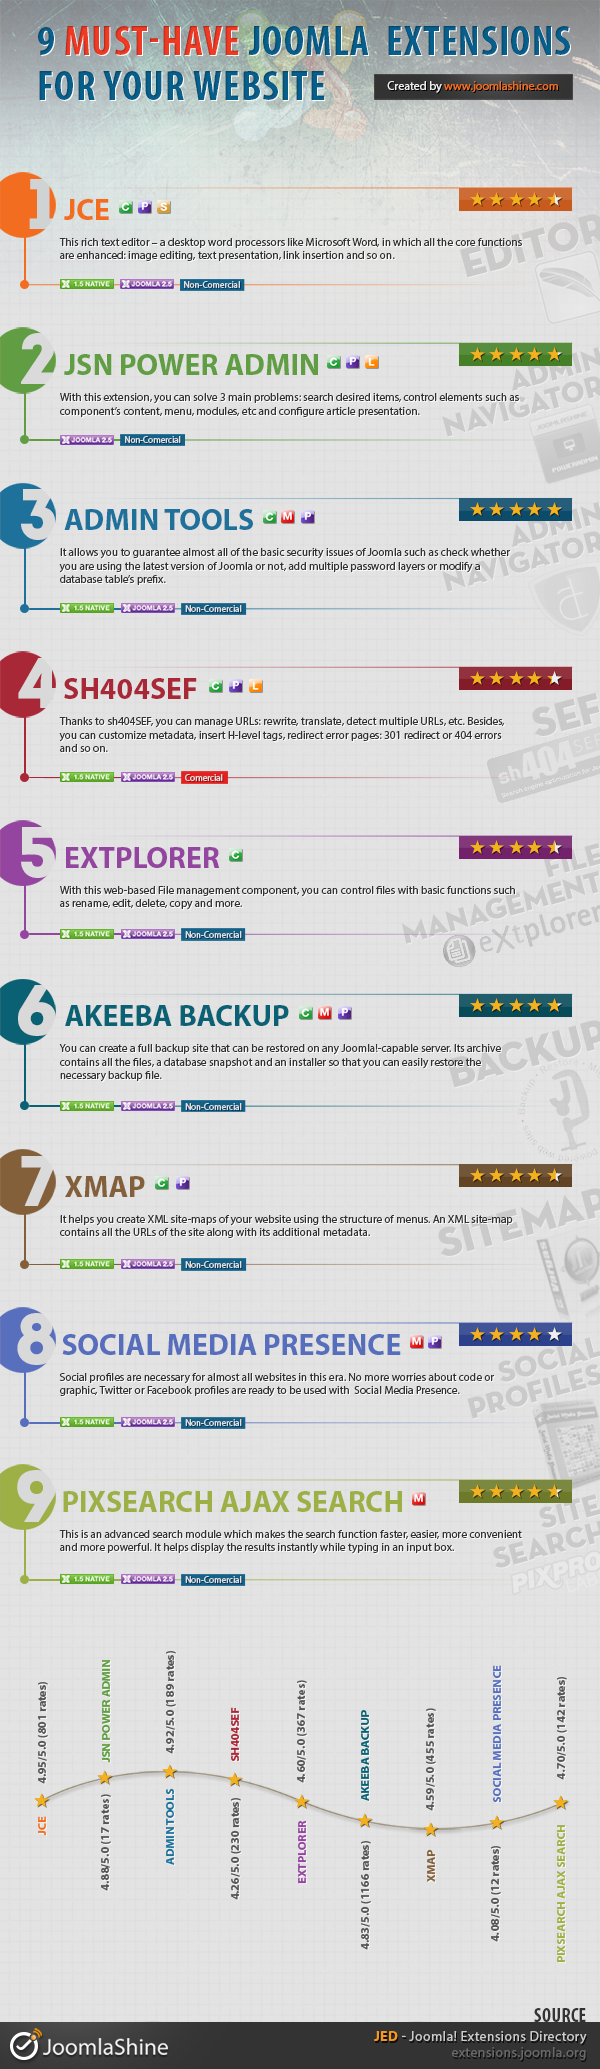 [Infographic] 9 must-have Joomla 2.5 extensions for your website